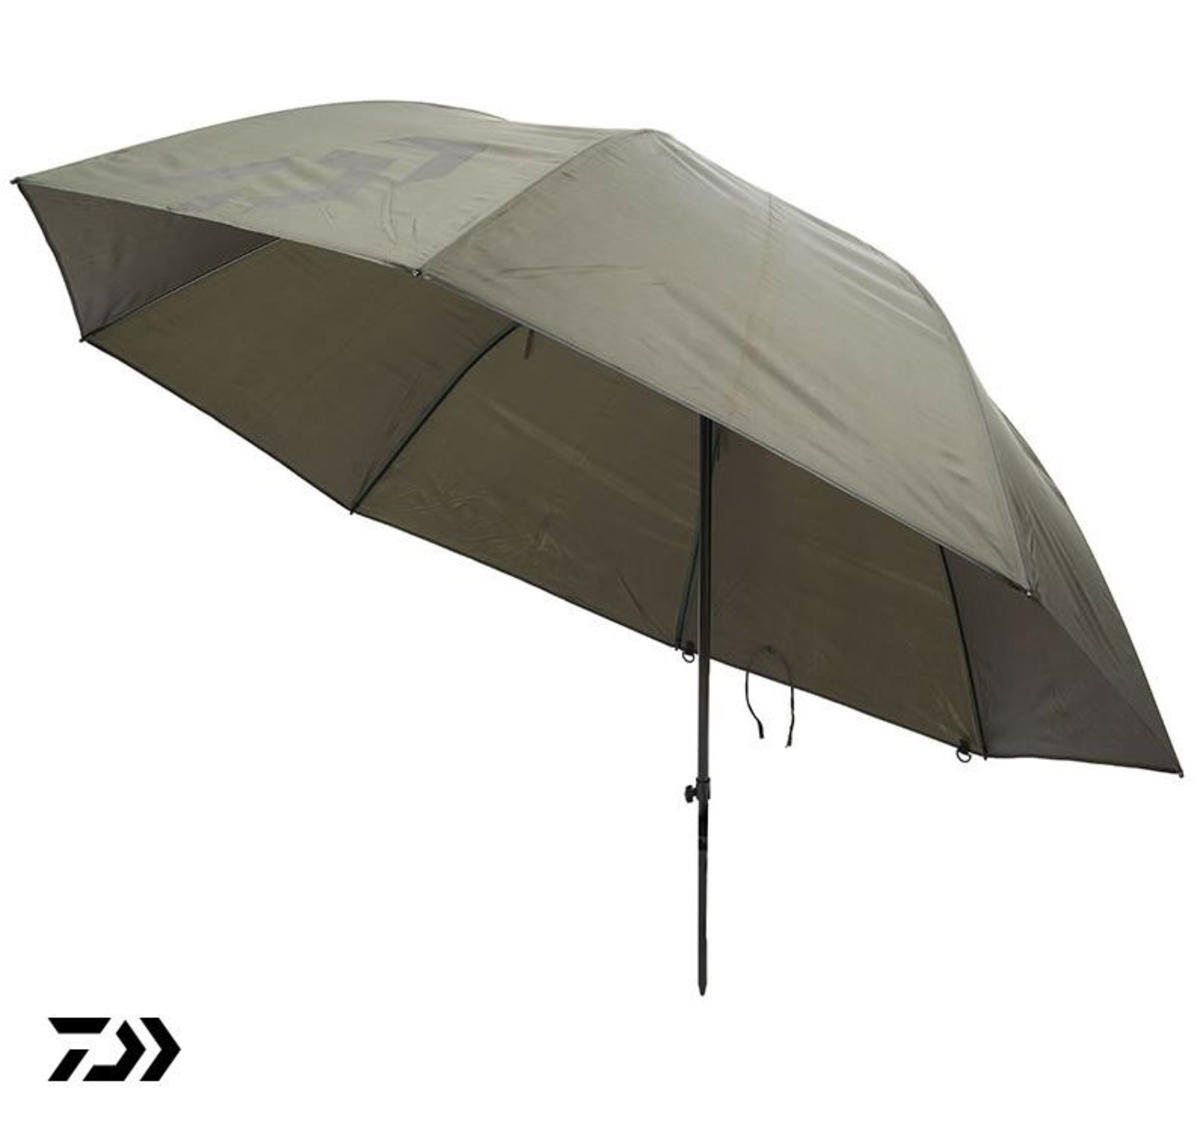 "New Daiwa 125cm / 50"" Green Fishing Brolly / Umbrella - Round - DGB50"